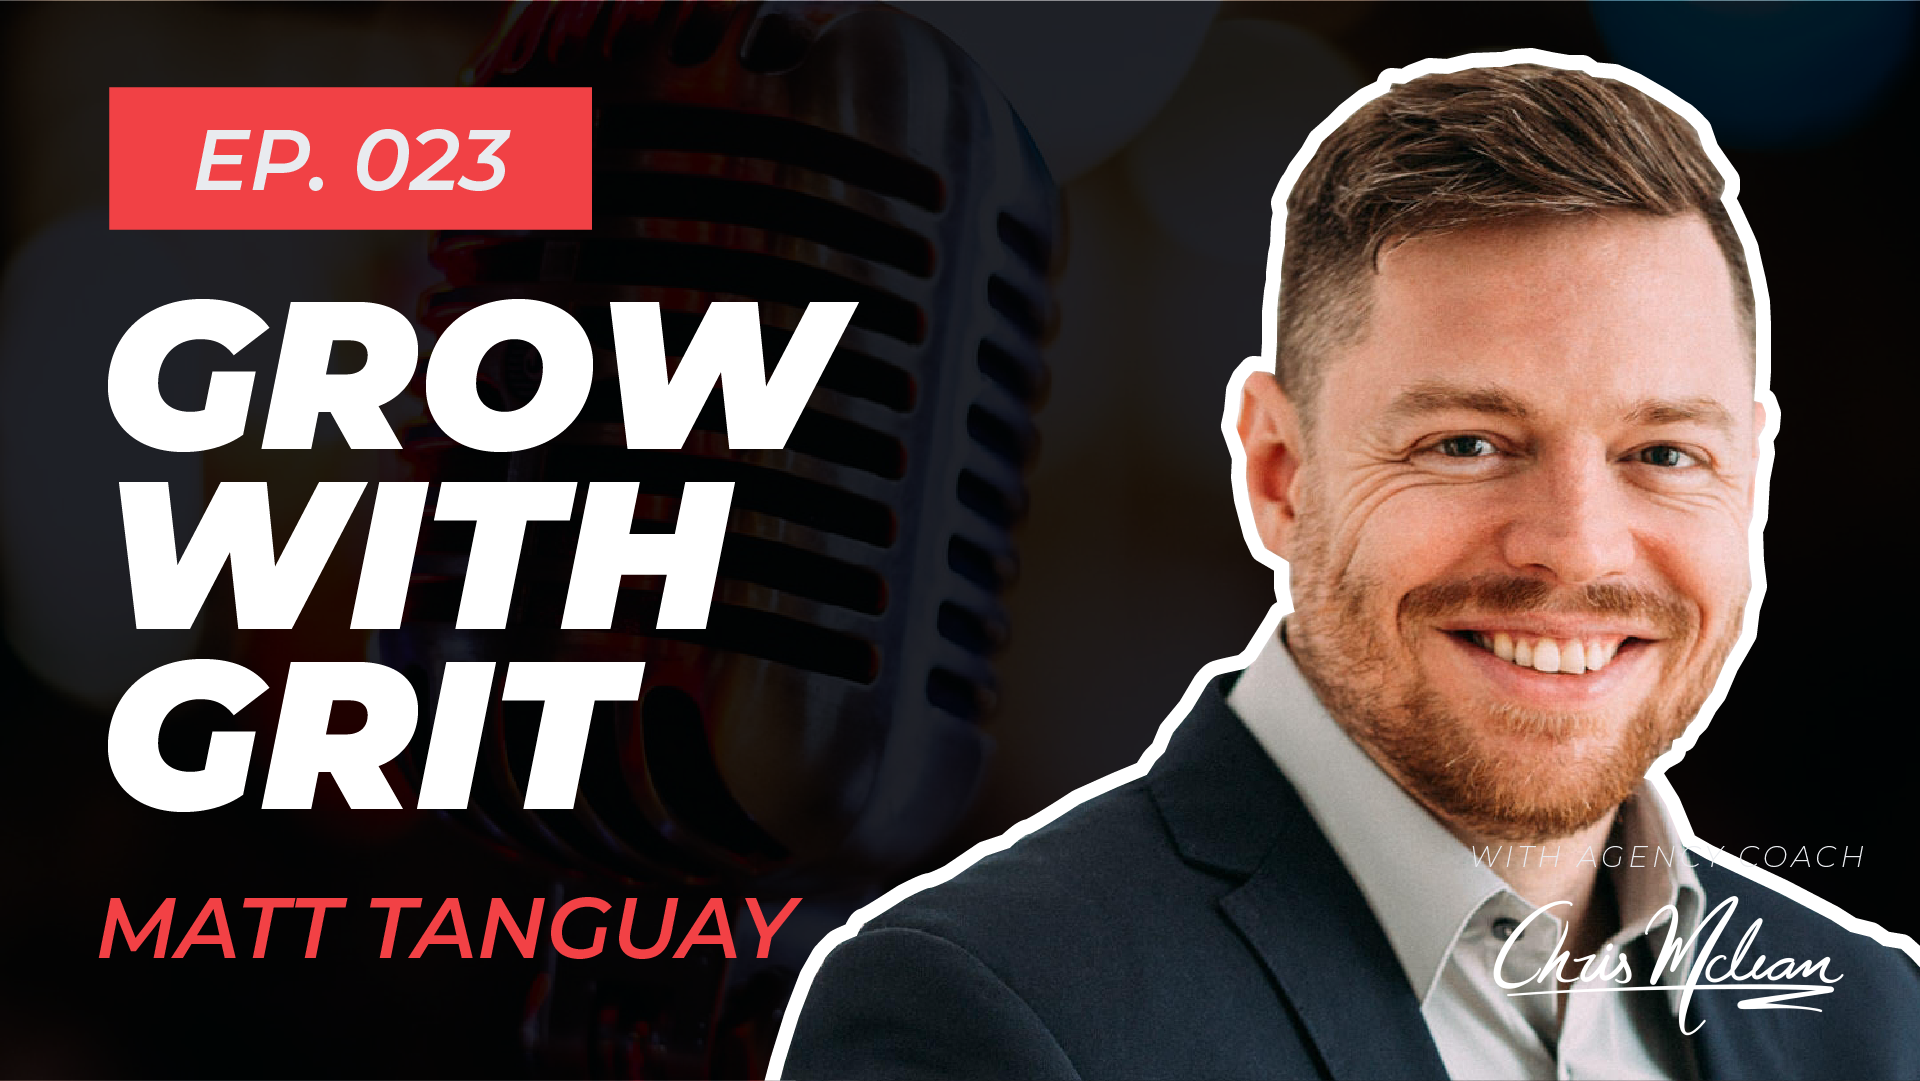 EP023 | Grow With Grit with Matt Tanguay